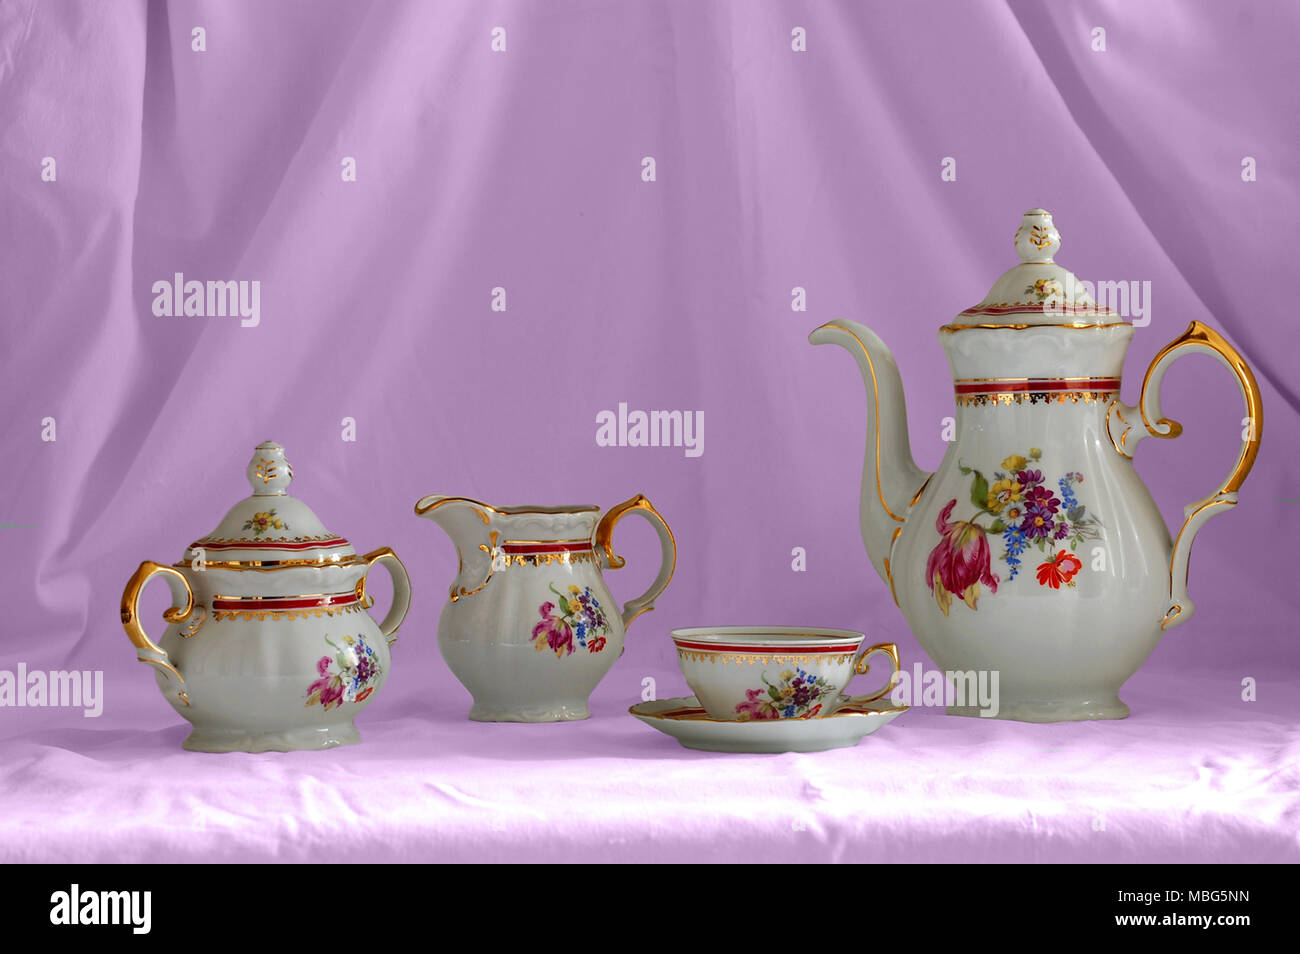 Porcelain coffee set classic pink background - Stock Image